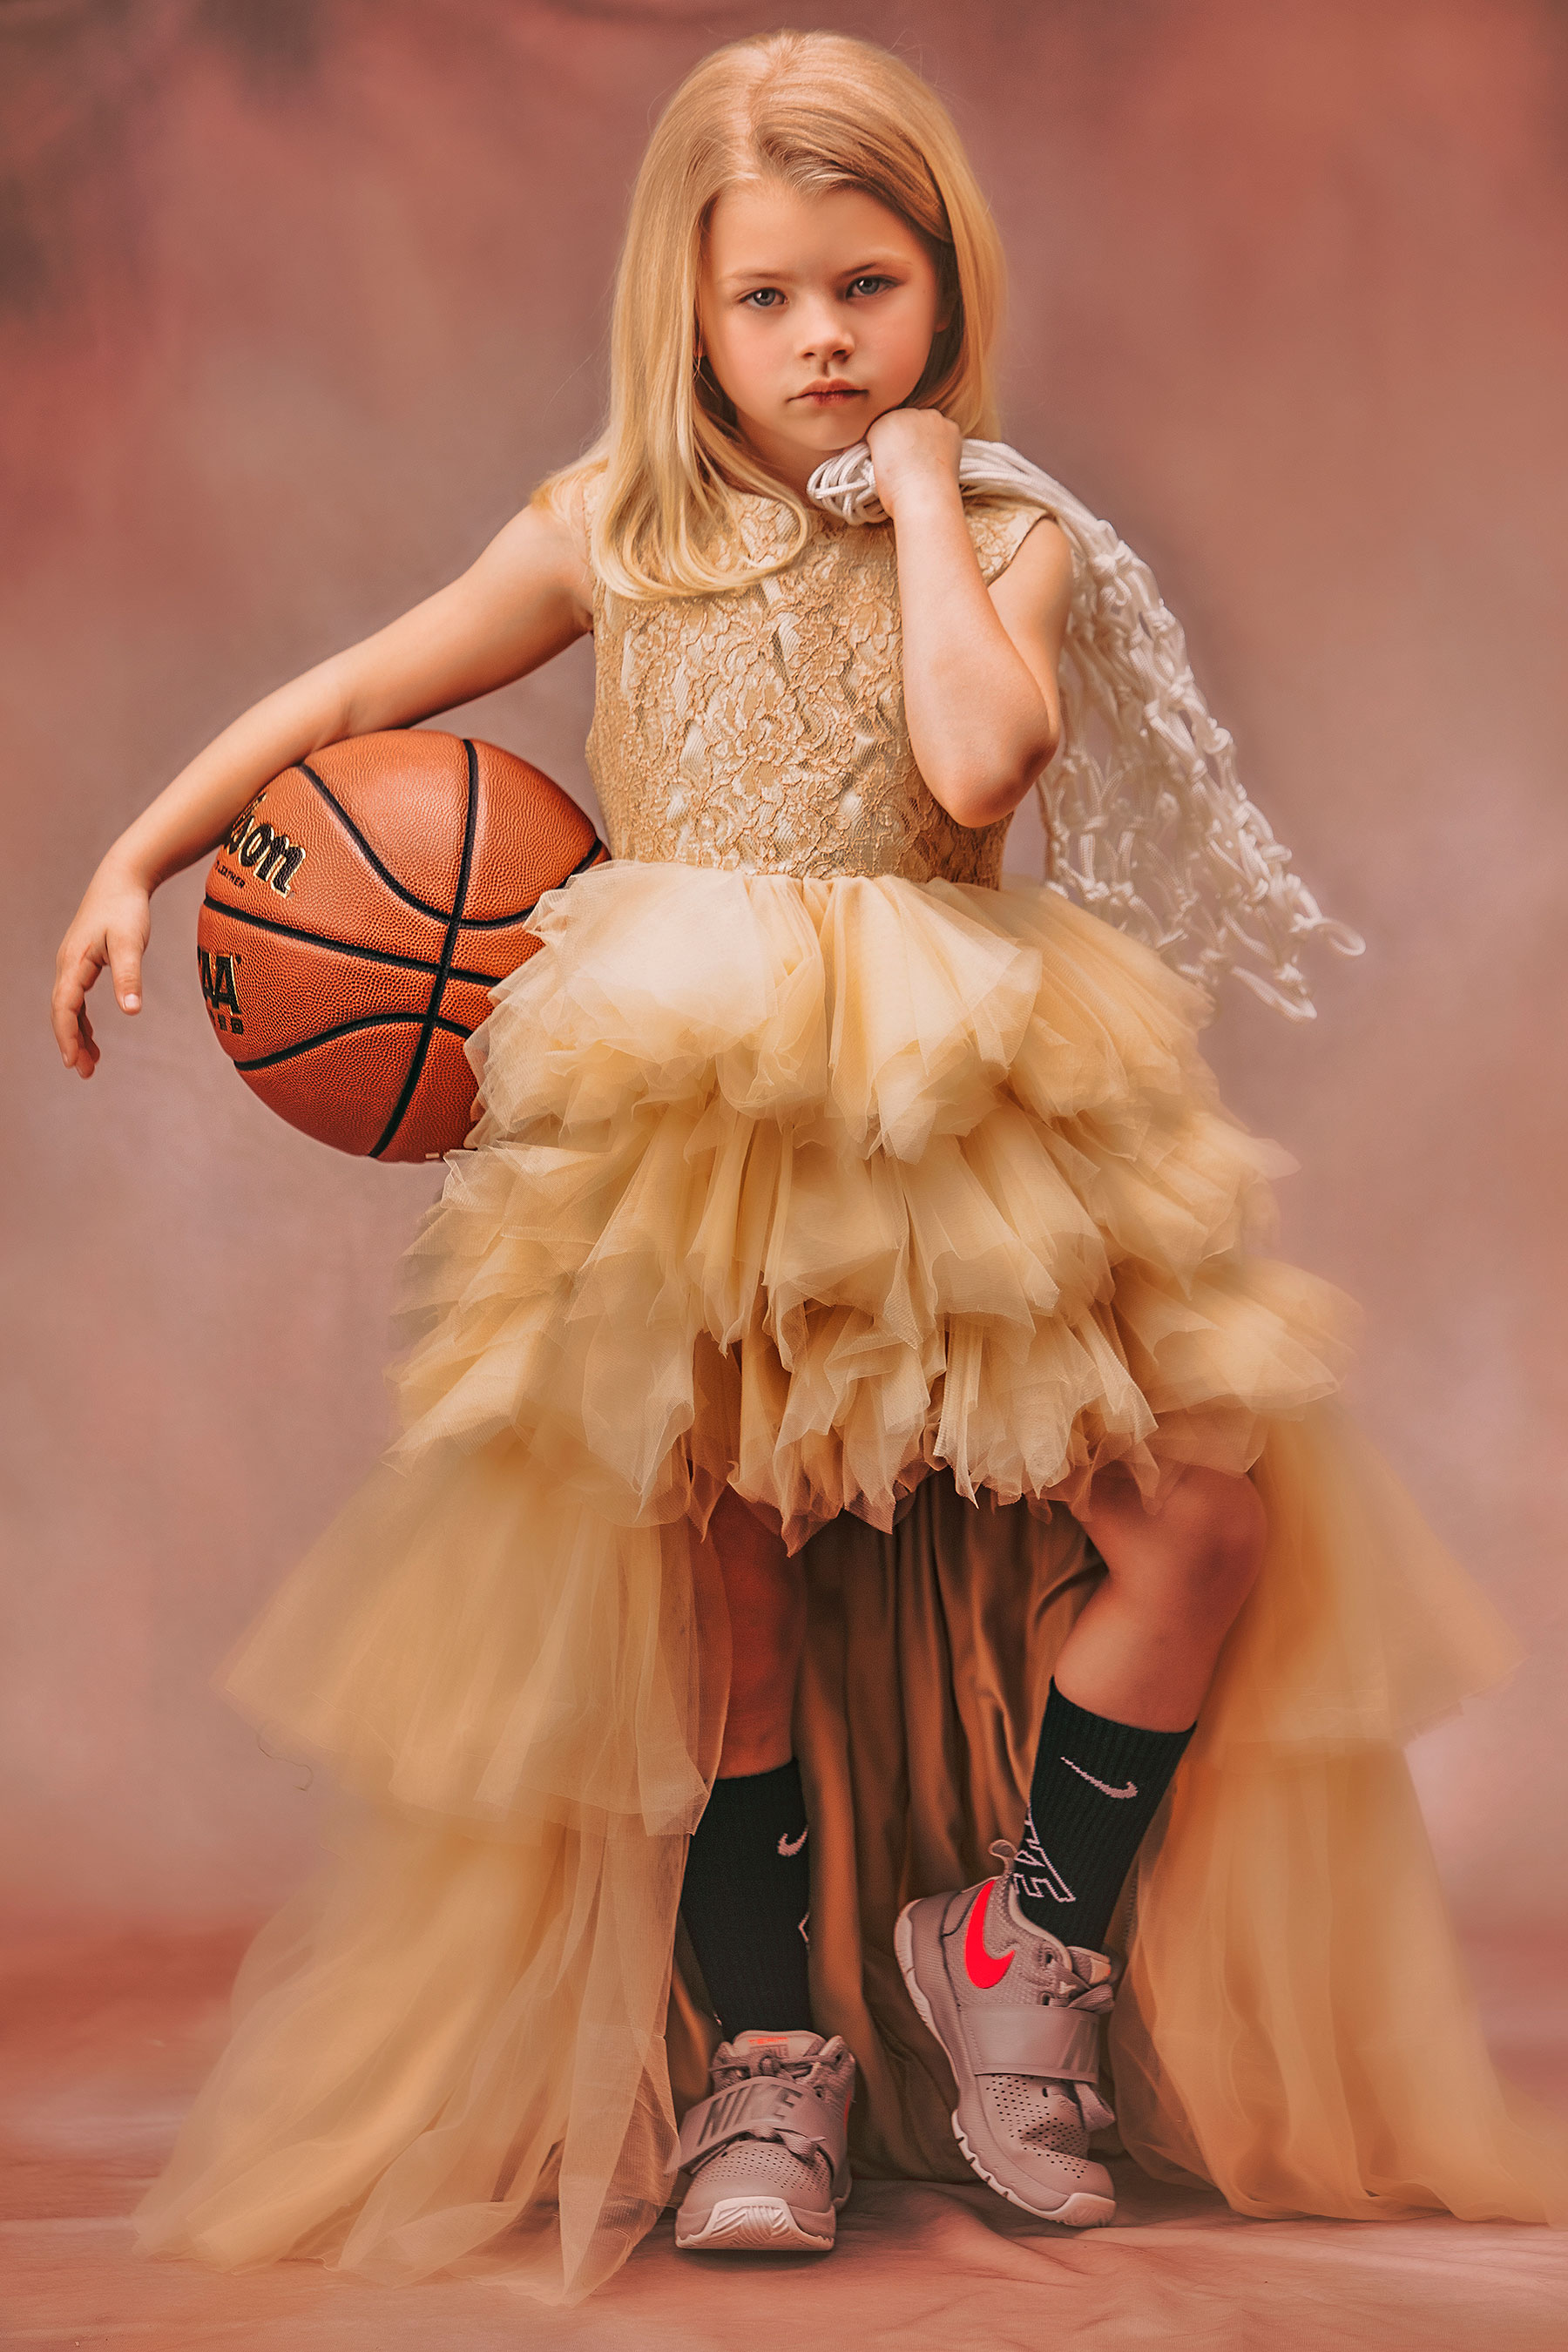 Athlete Princesses 2